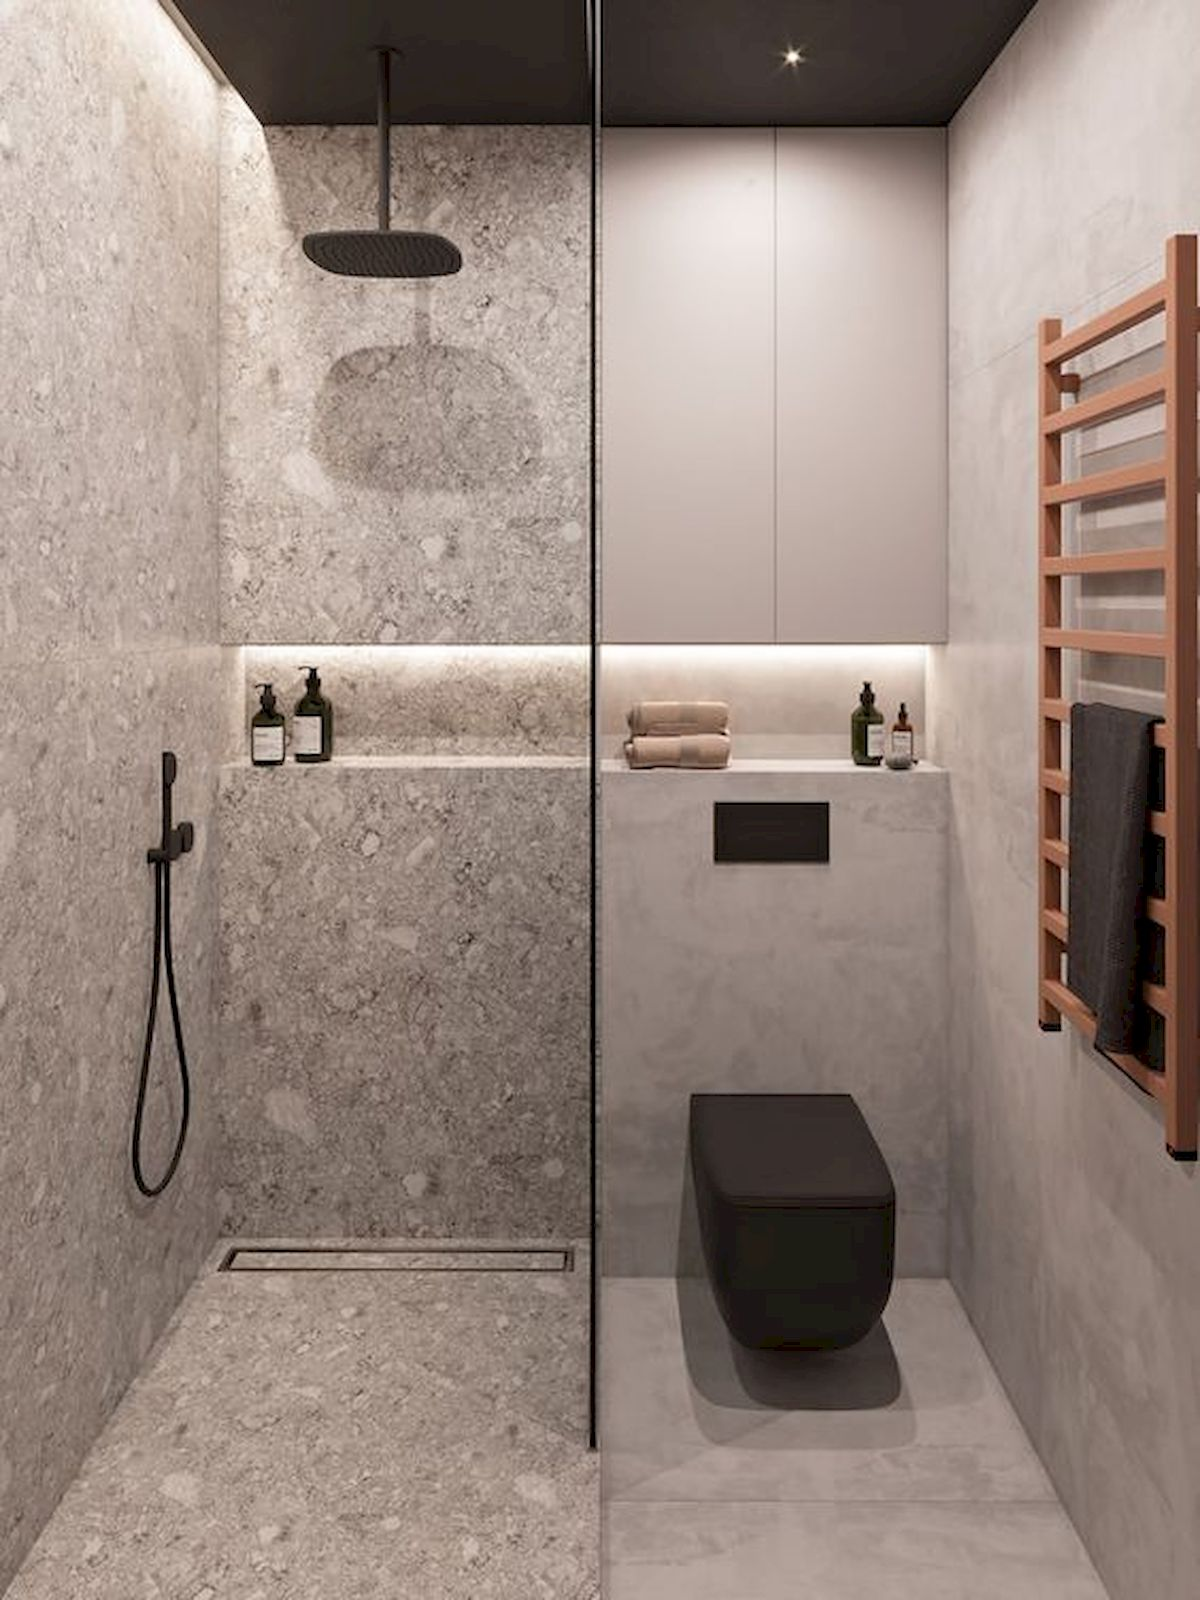 33 Ideas For Small Bathroom (8)